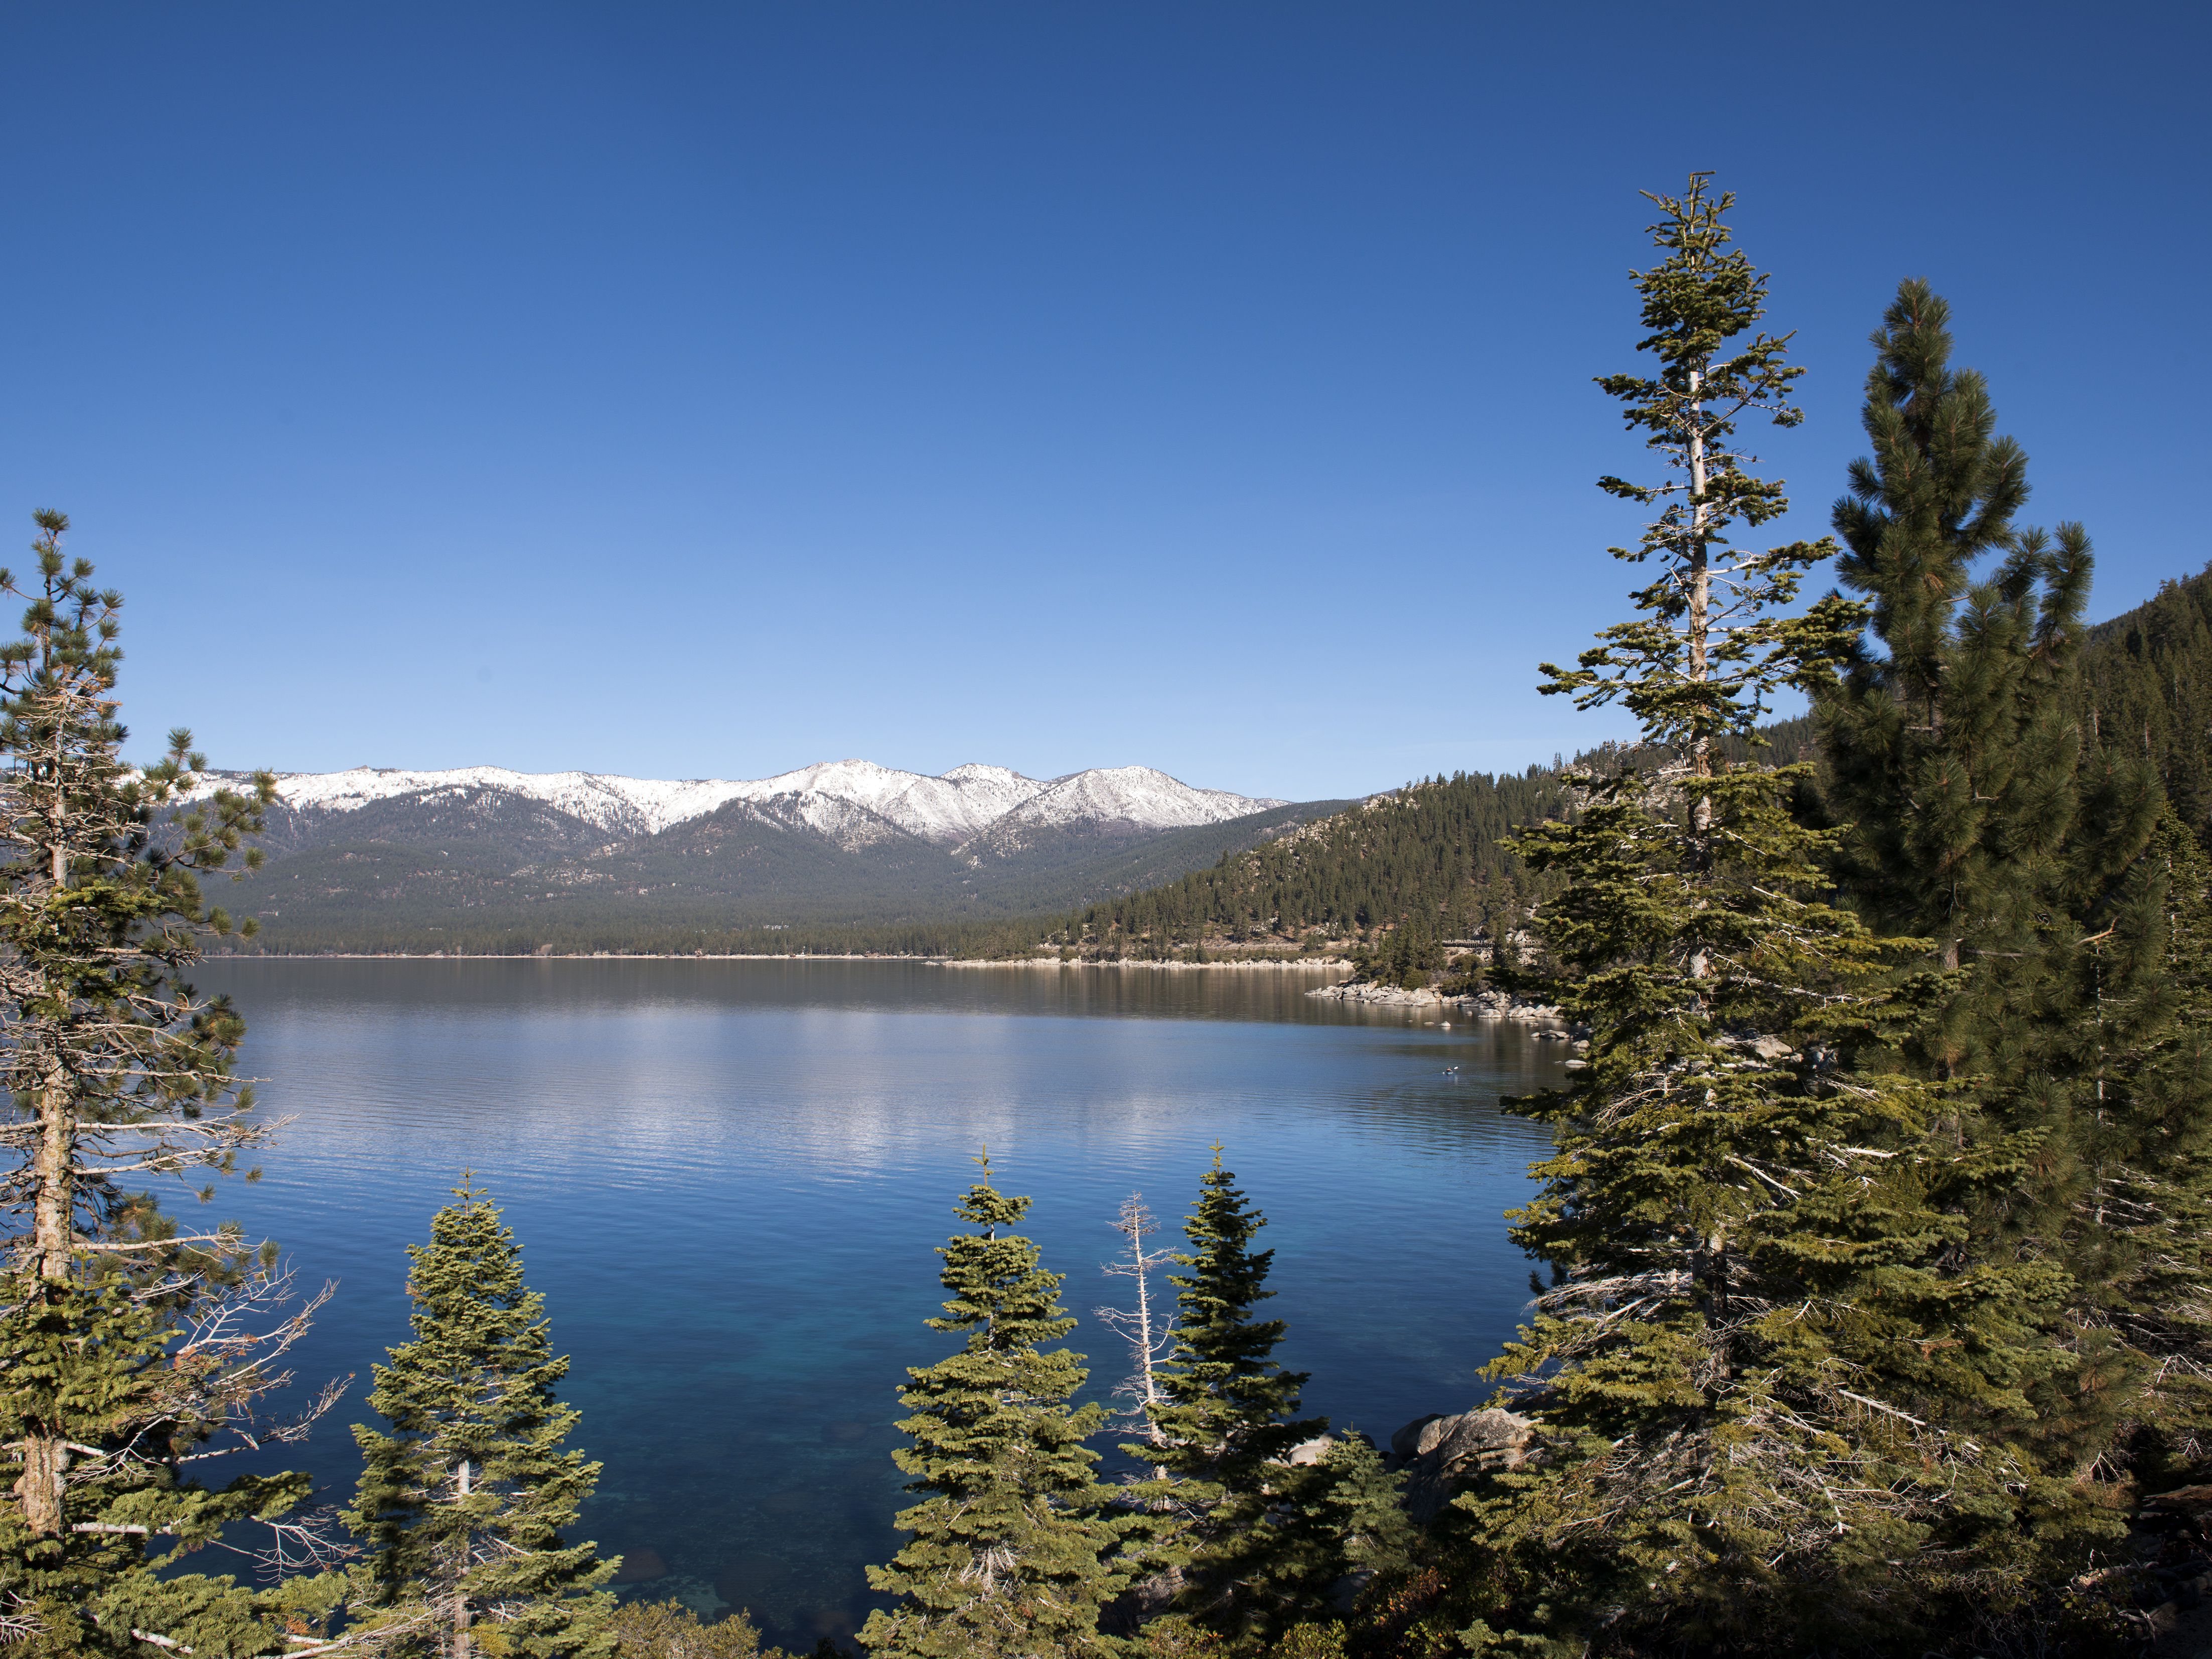 Lake Tahoe Weddings: Ideas, Legal Requirements, Places